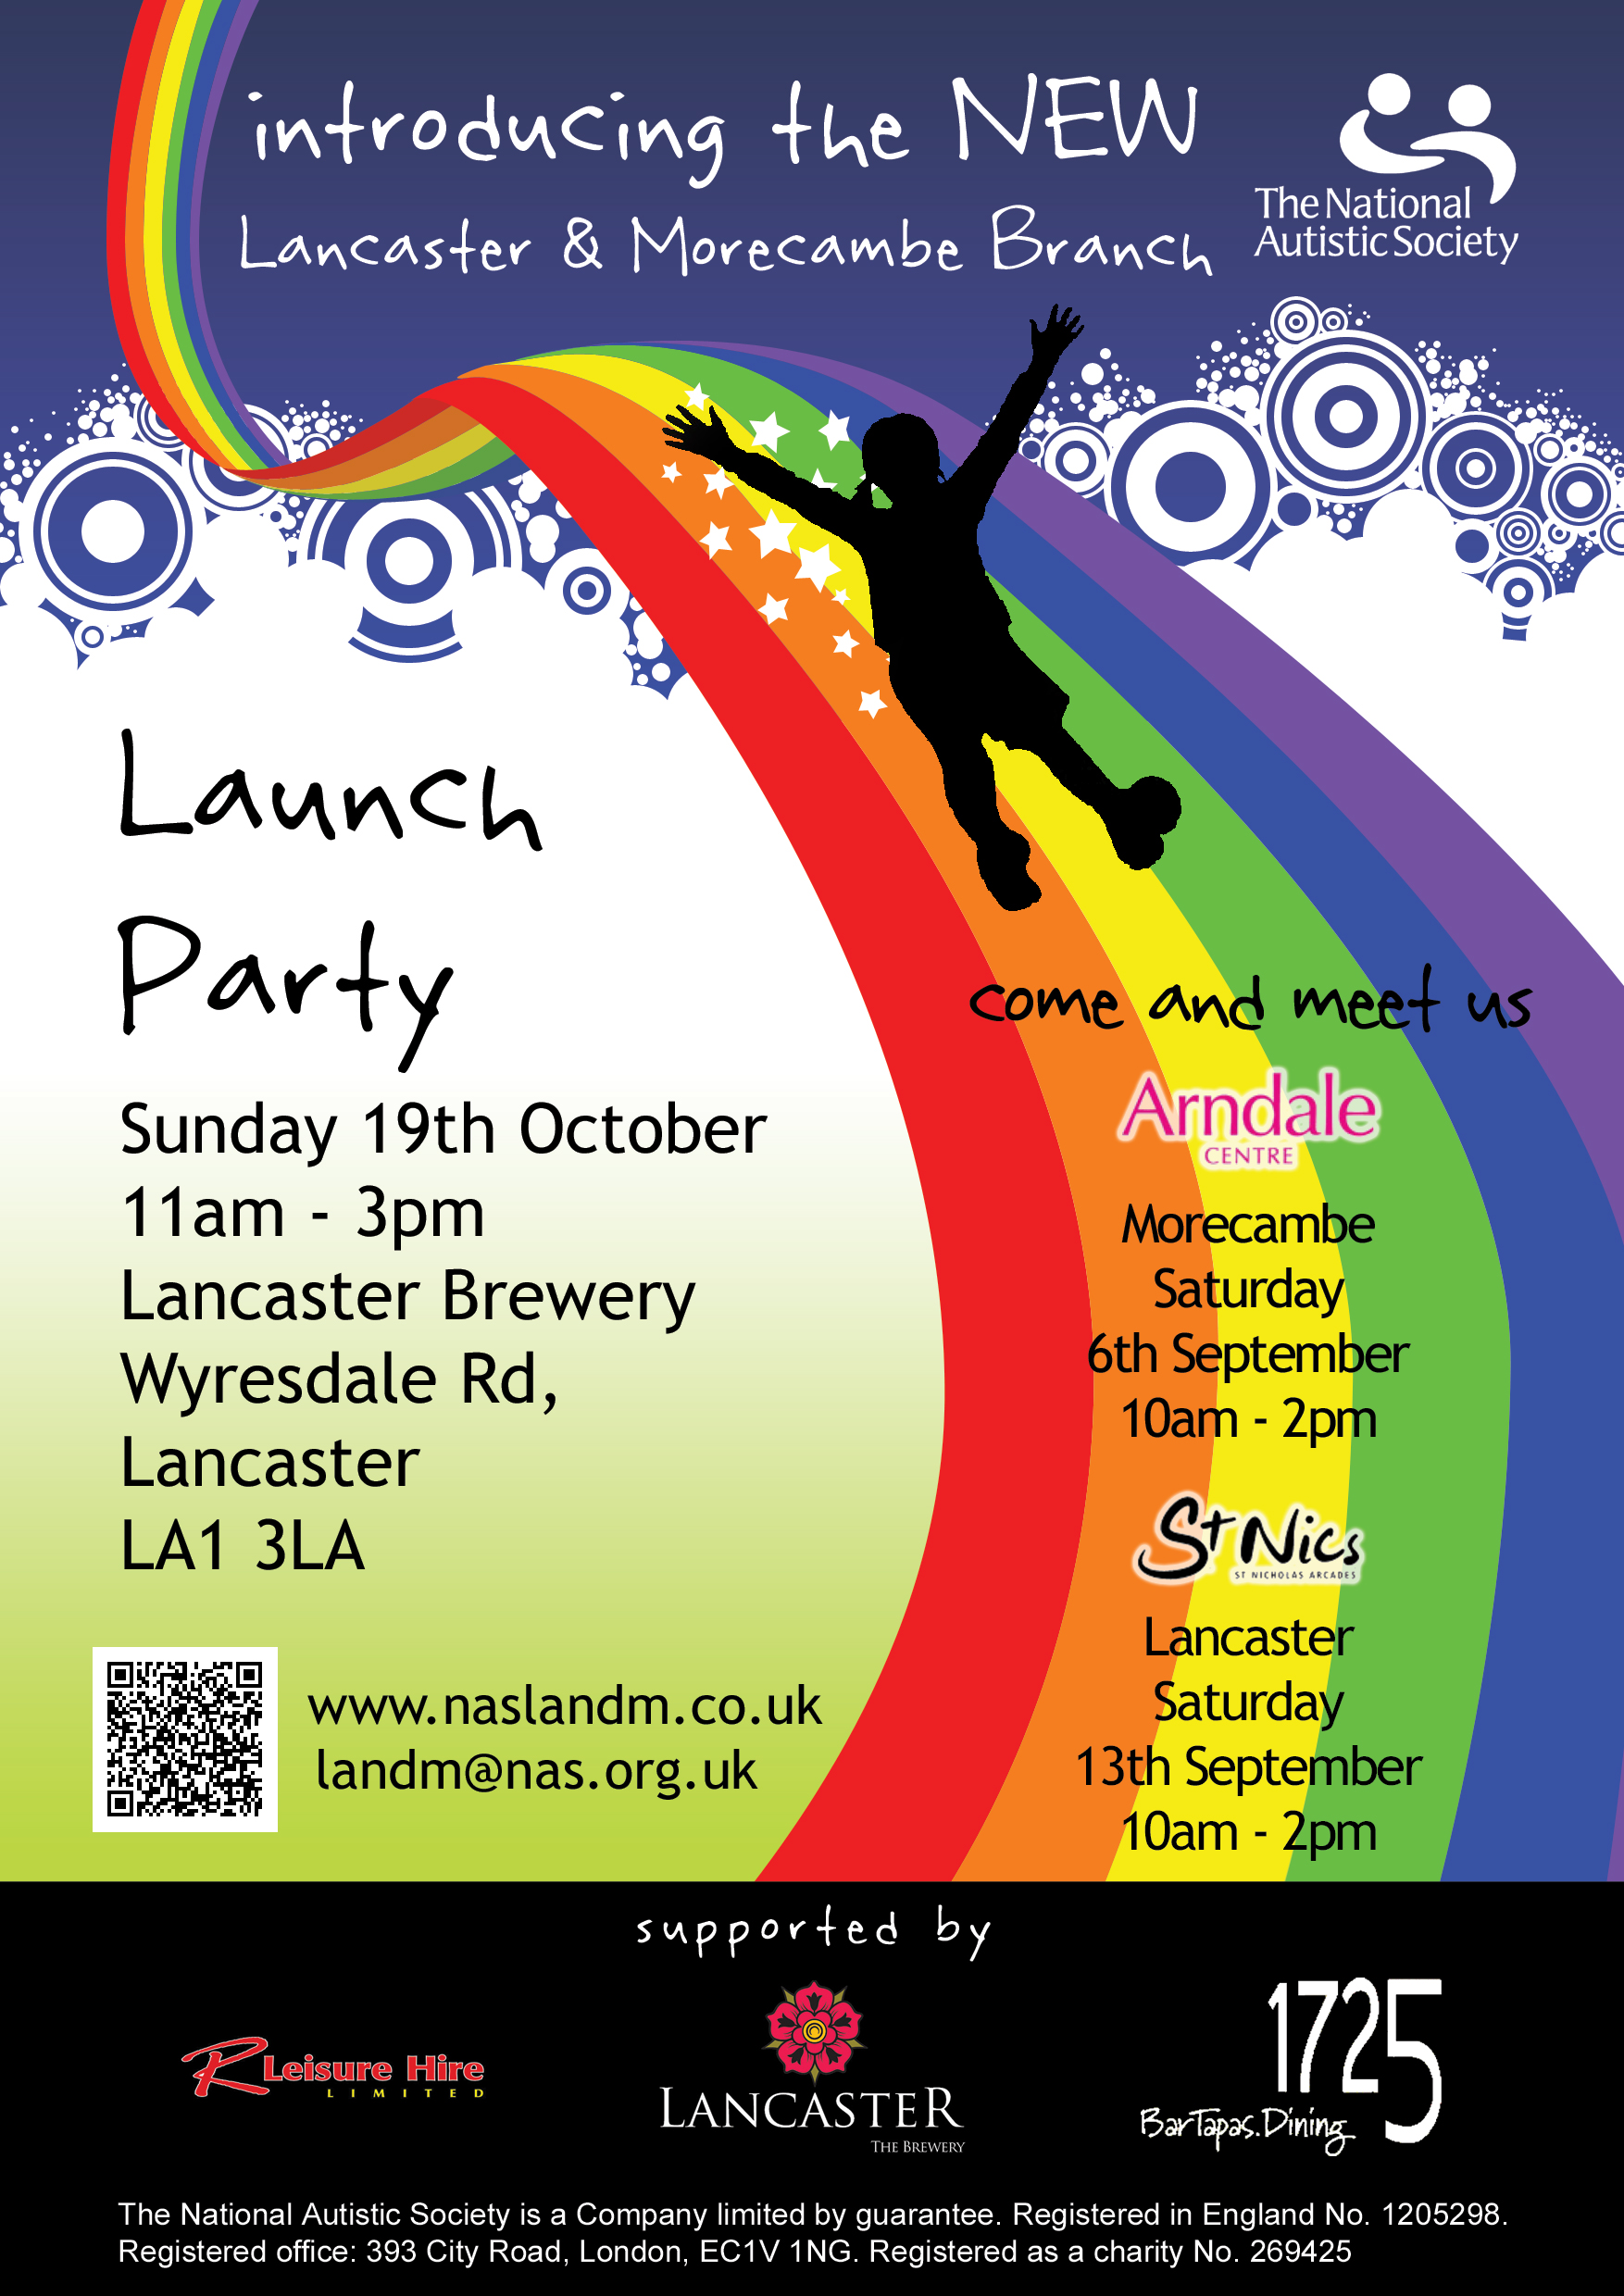 National Autistic Society Lancaster and Morecambe Branch Launch Party